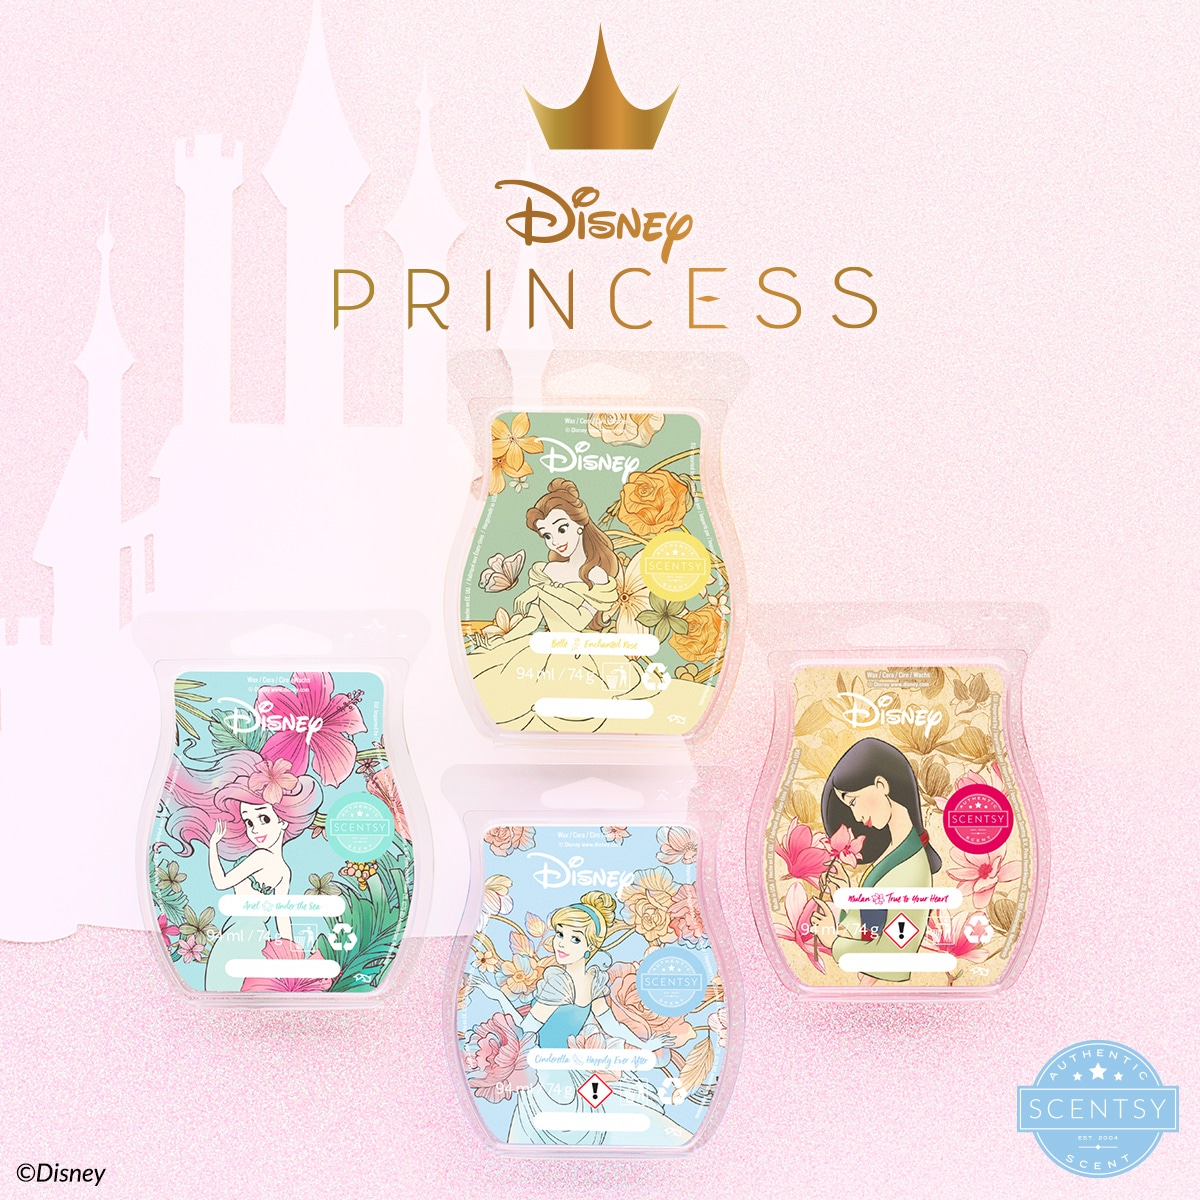 Share a little Scentsy magic with your favourite Disney Princess! Bring home our four new Disney Princess fragrances as part of The Disney Collection!